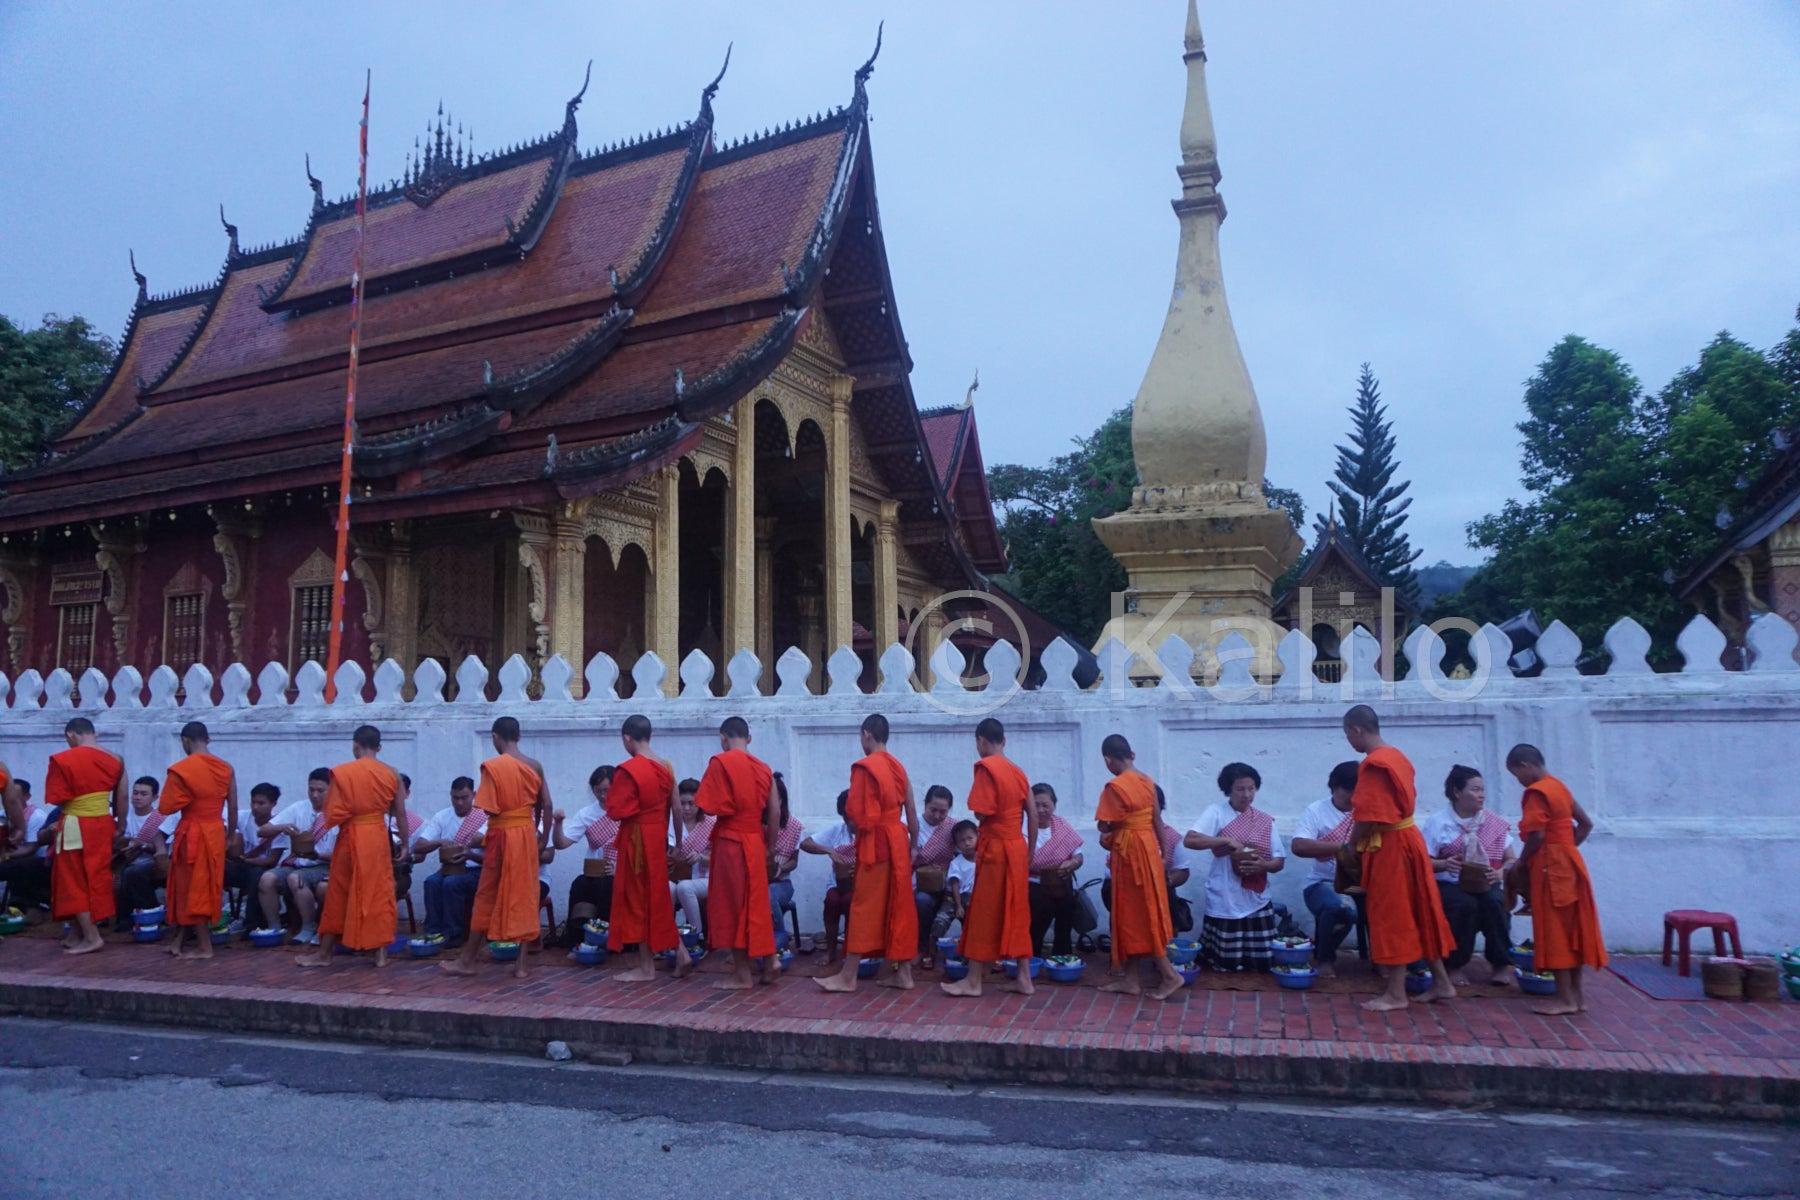 Sai Bat - Morning Alms - Luang Prabang, Laos